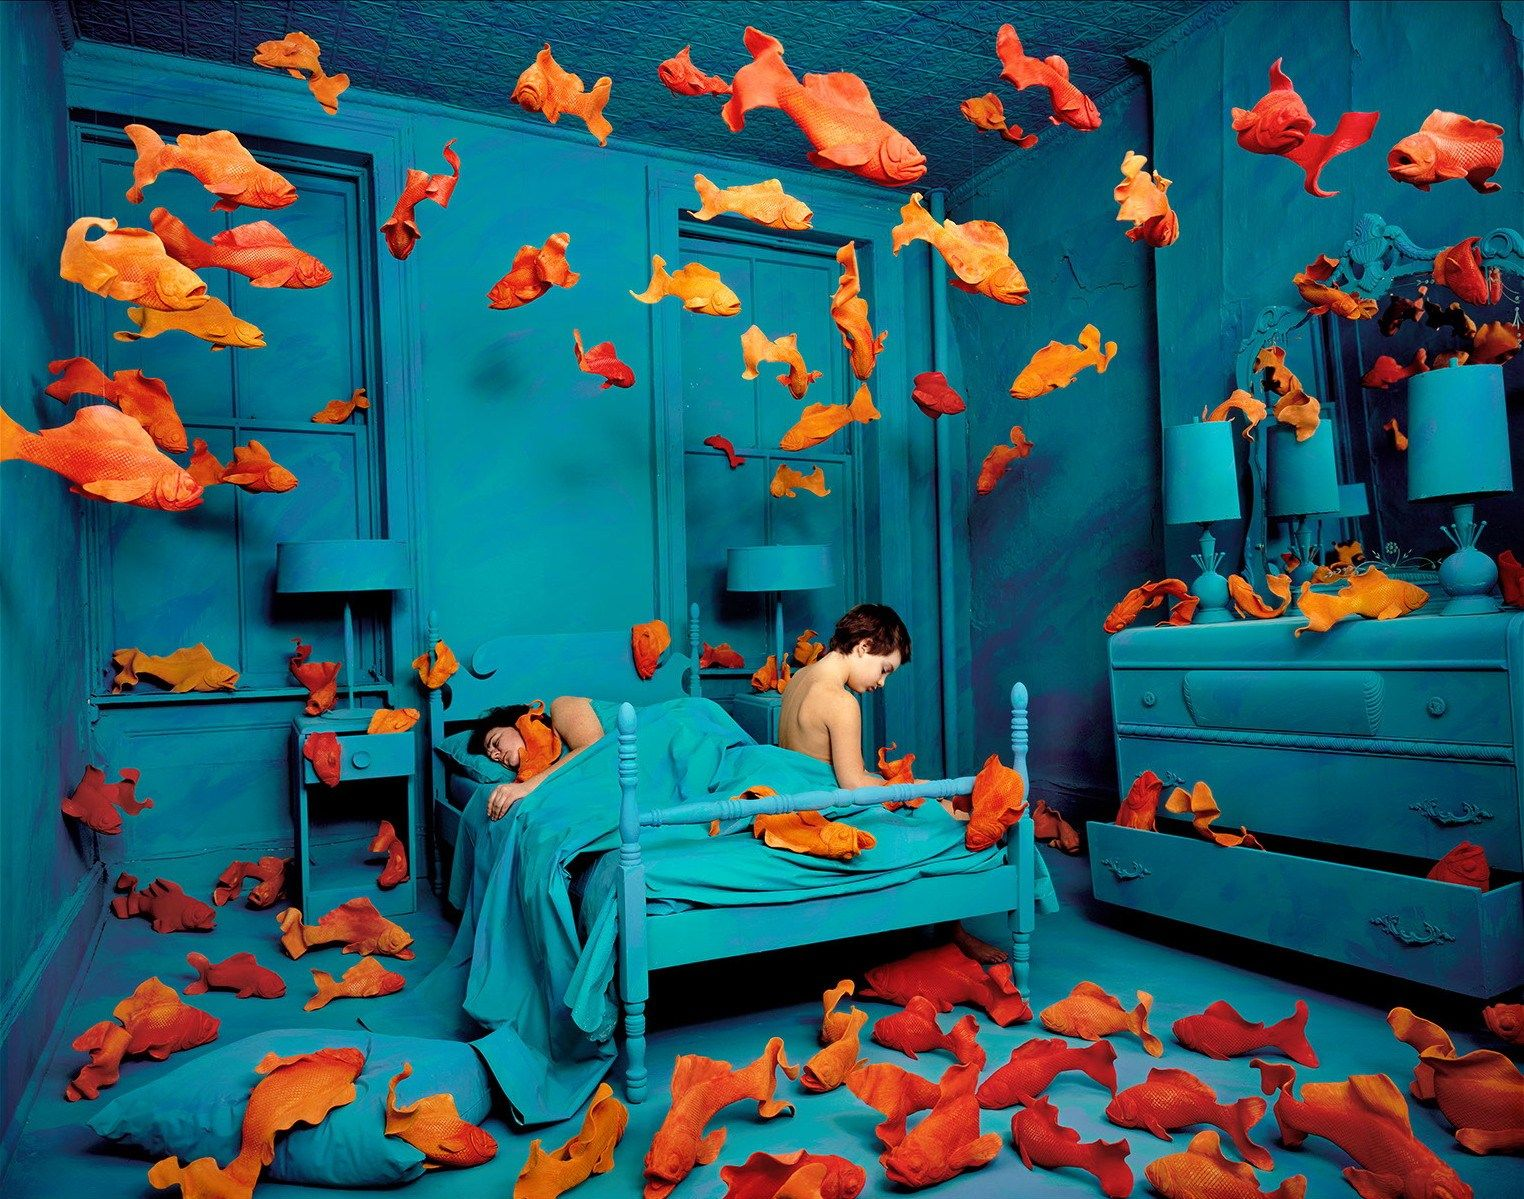 Cool Wallpapers Boy Room Bedroom Cool Themed Bedroom Designs - Artist creates amazing fantasy dreamscapes into her small studio without using photoshop